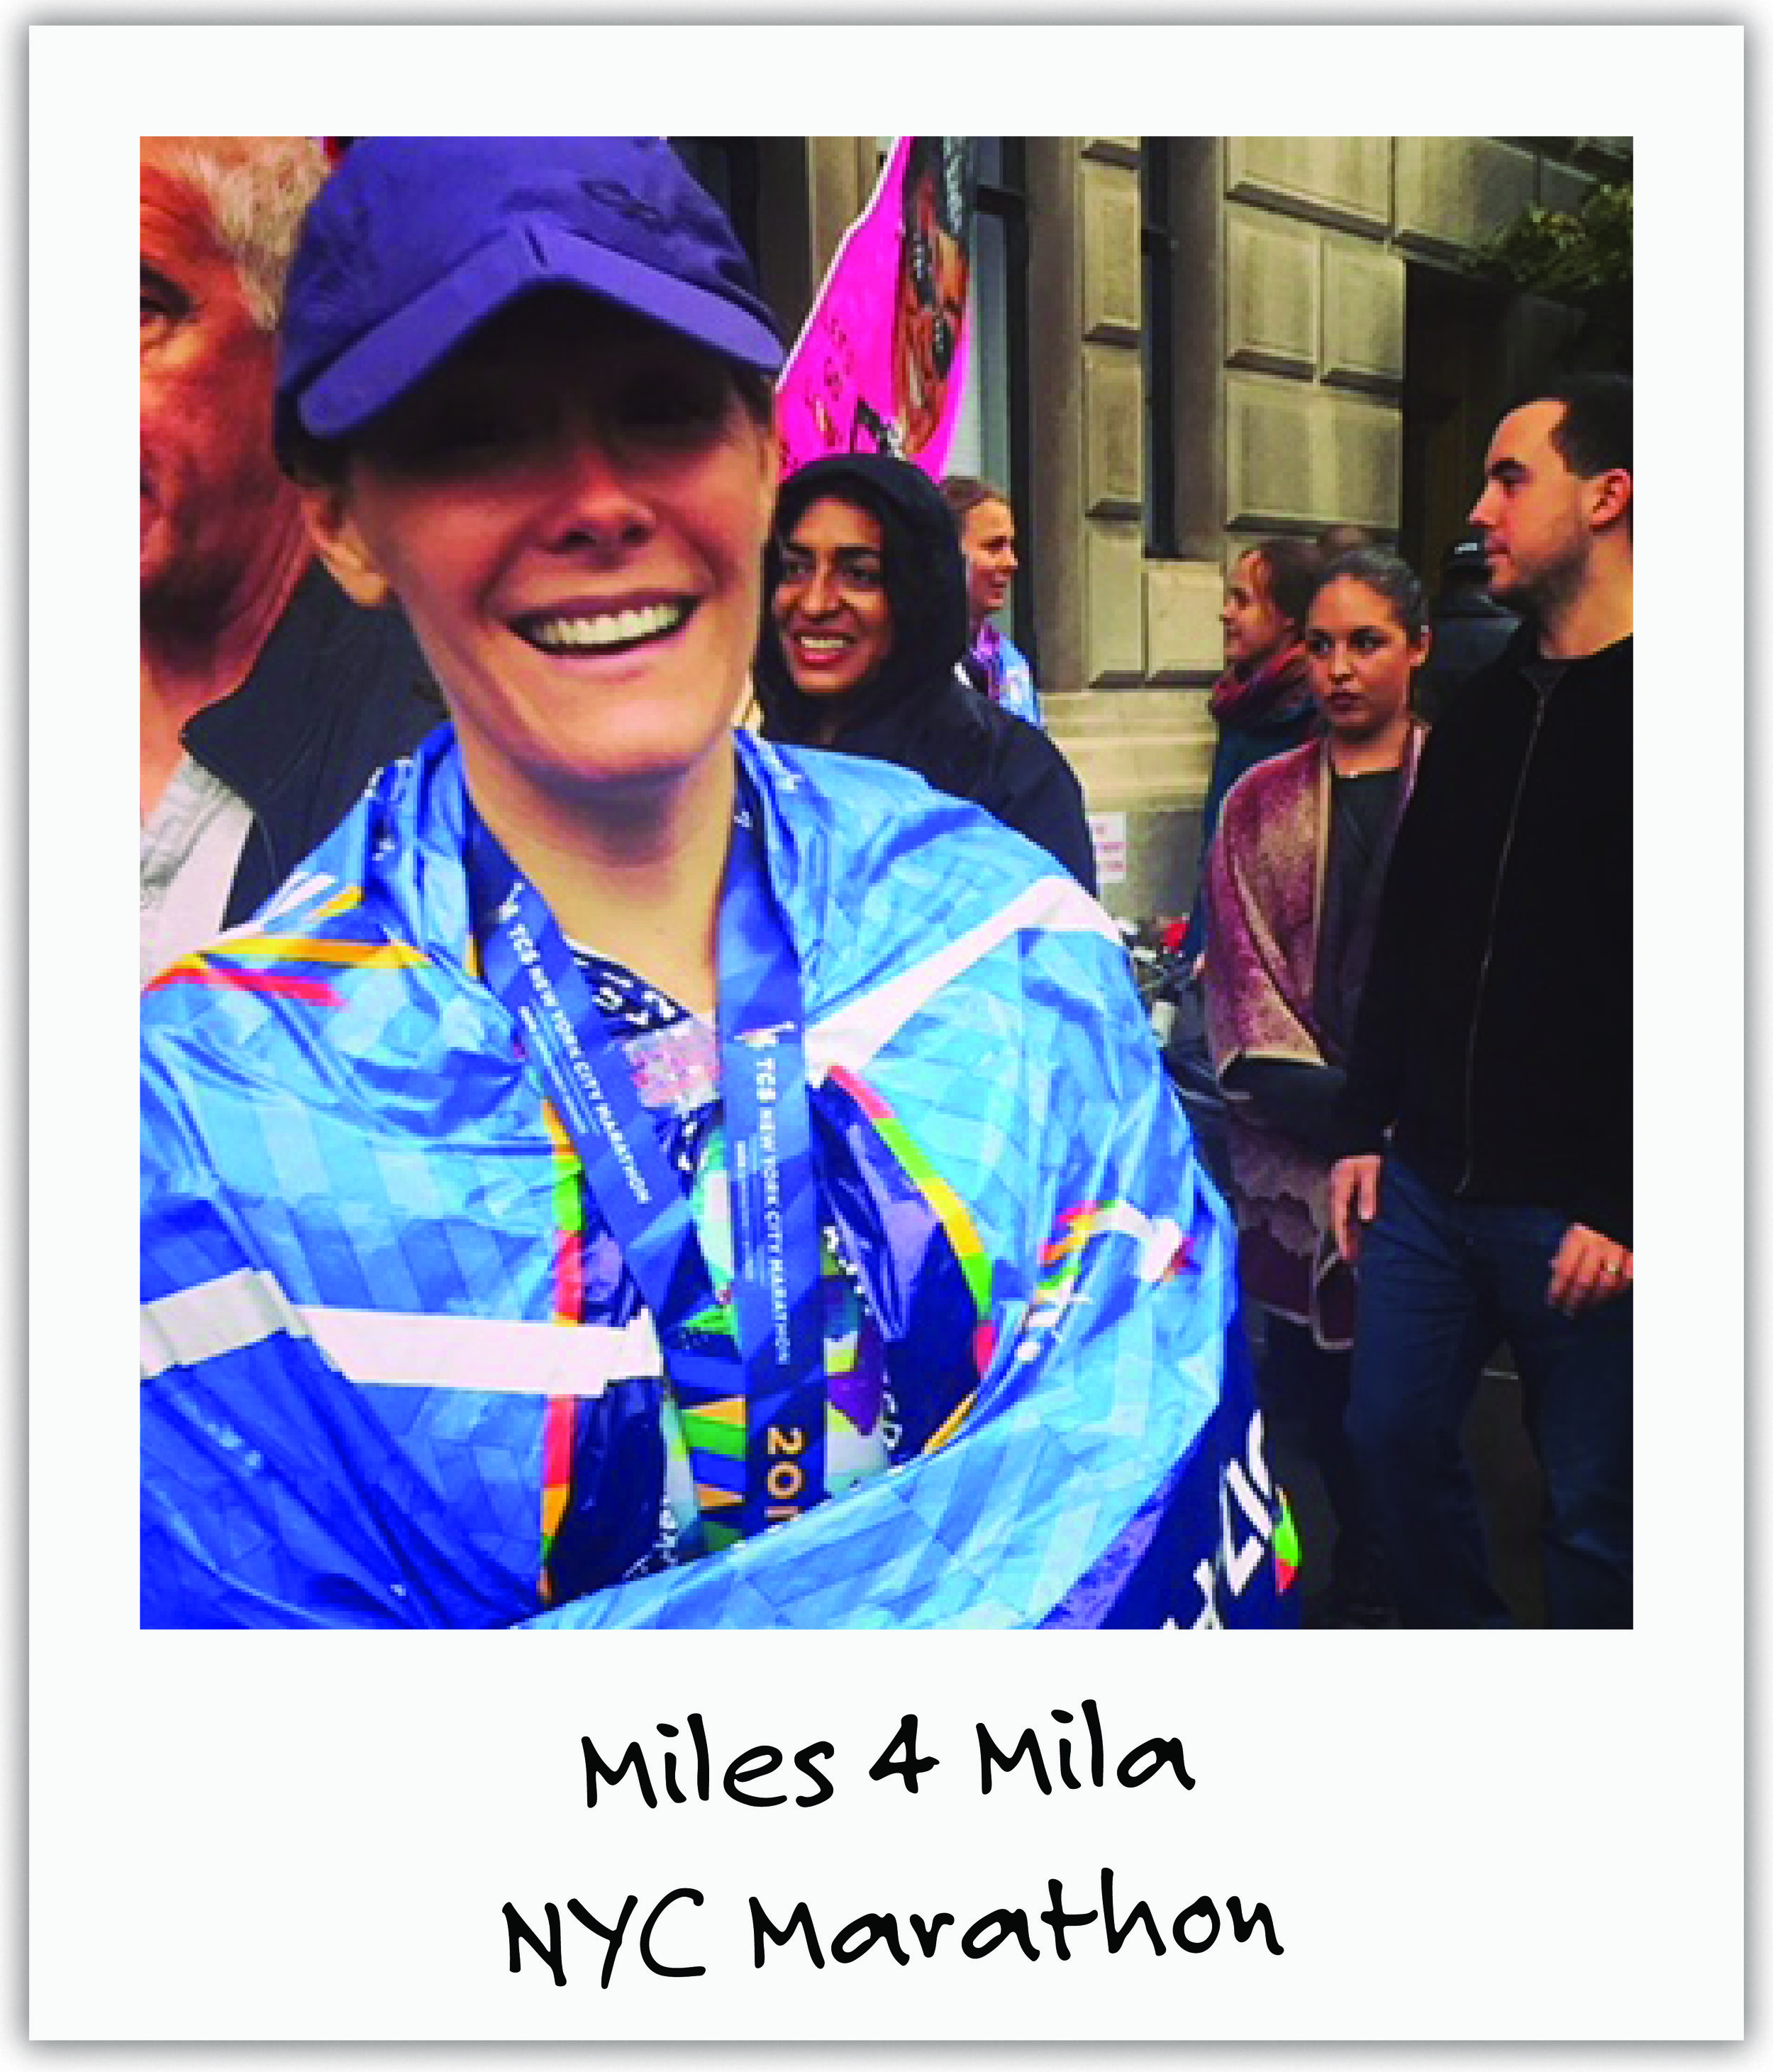 New friend Christina heard about Mila and ran the NYC Marathon on Nov. 5th raising thousands, in honor of Mila's 7th Birthday.